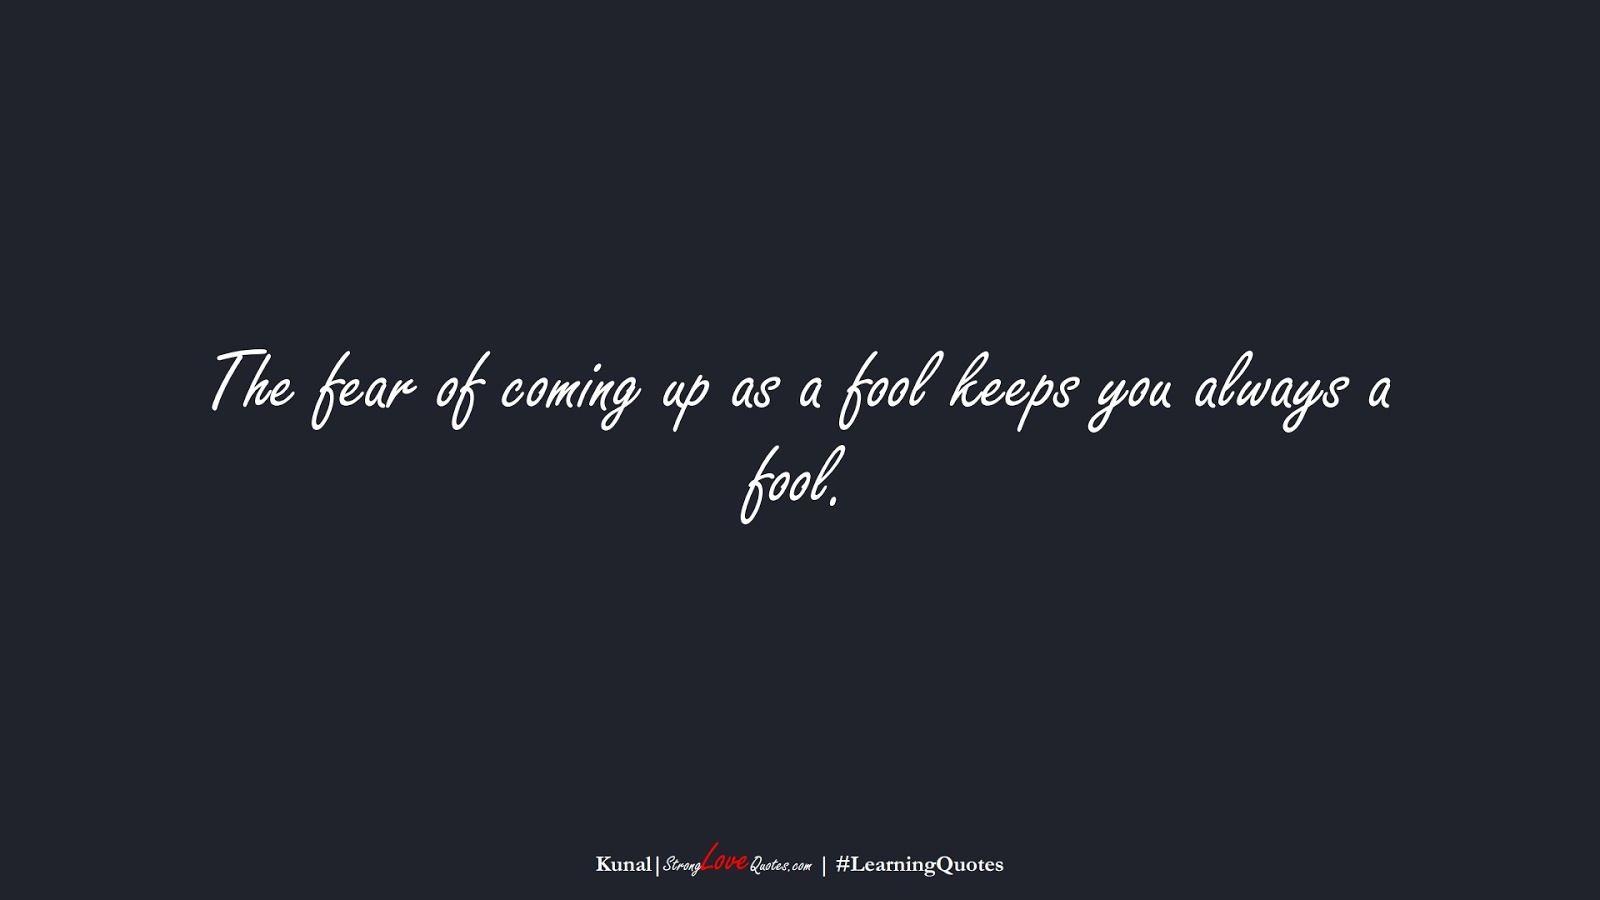 The fear of coming up as a fool keeps you always a fool. (Kunal);  #LearningQuotes